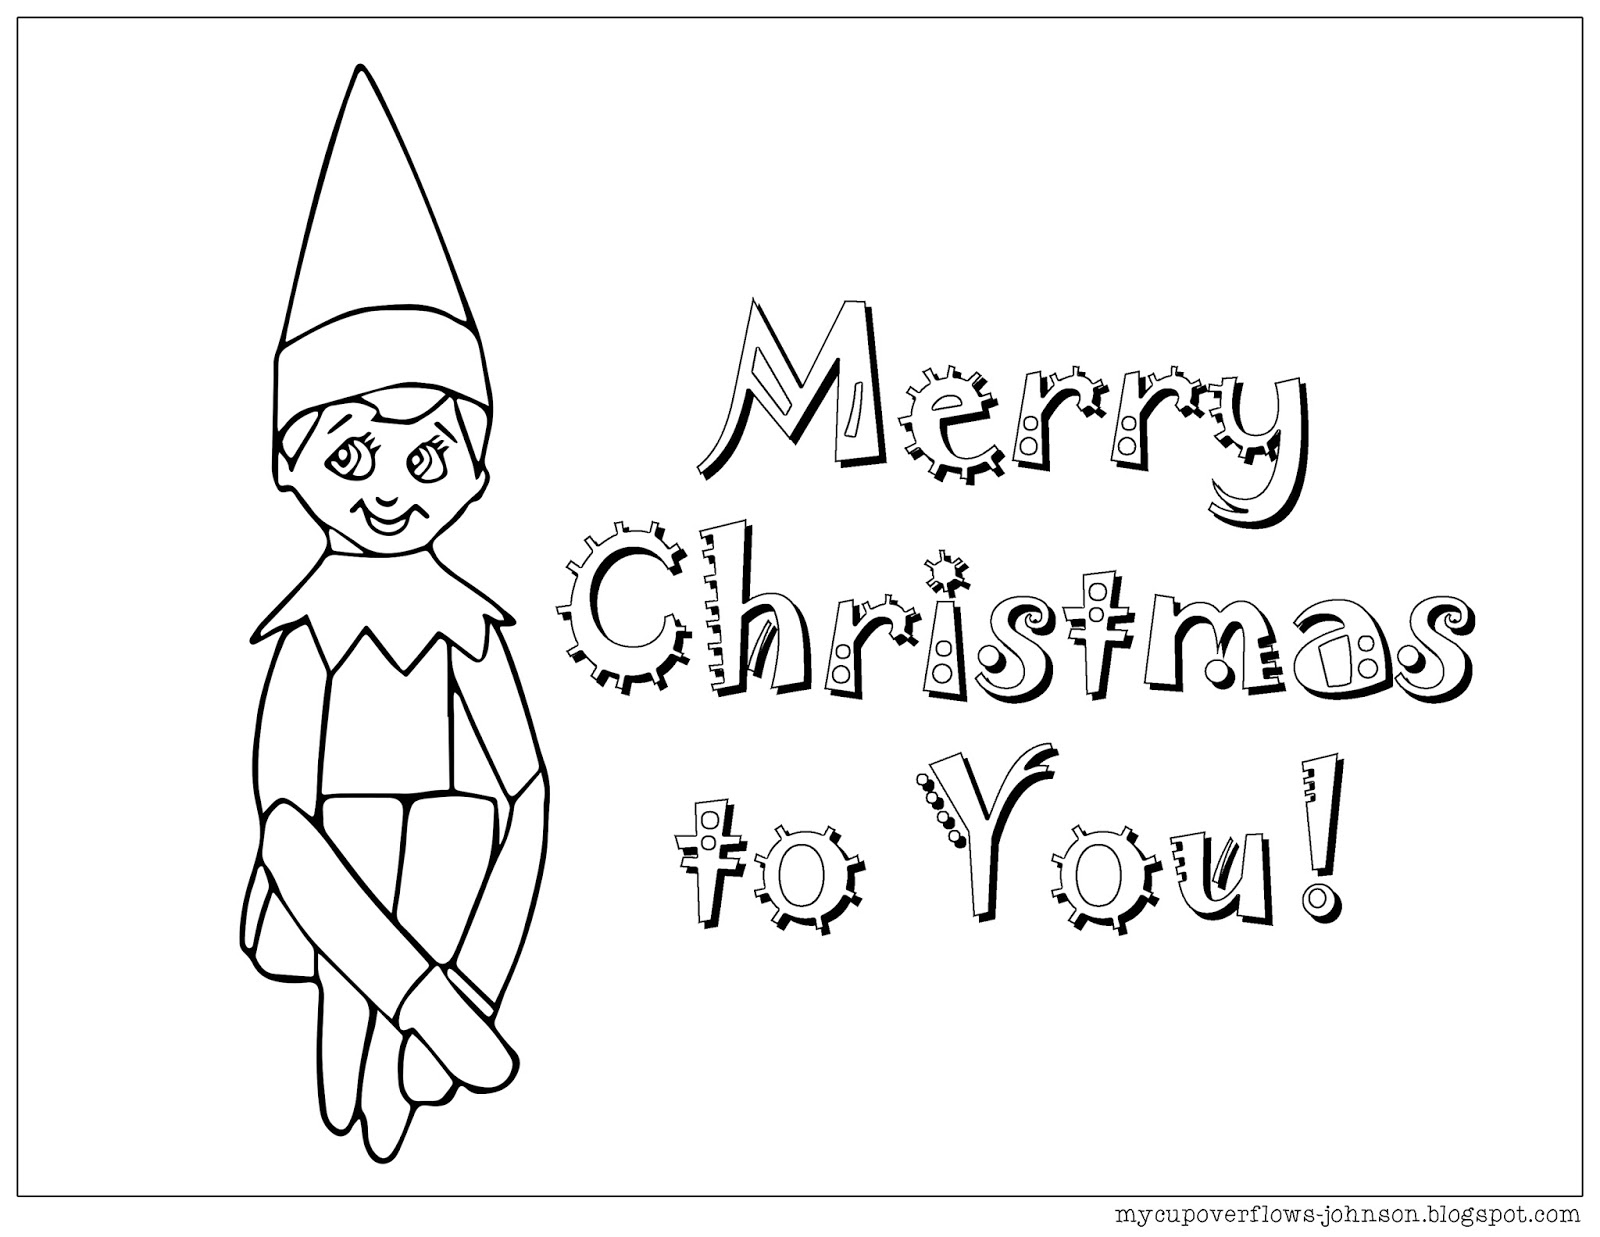 Geeky image in elf on the shelf printable coloring pages